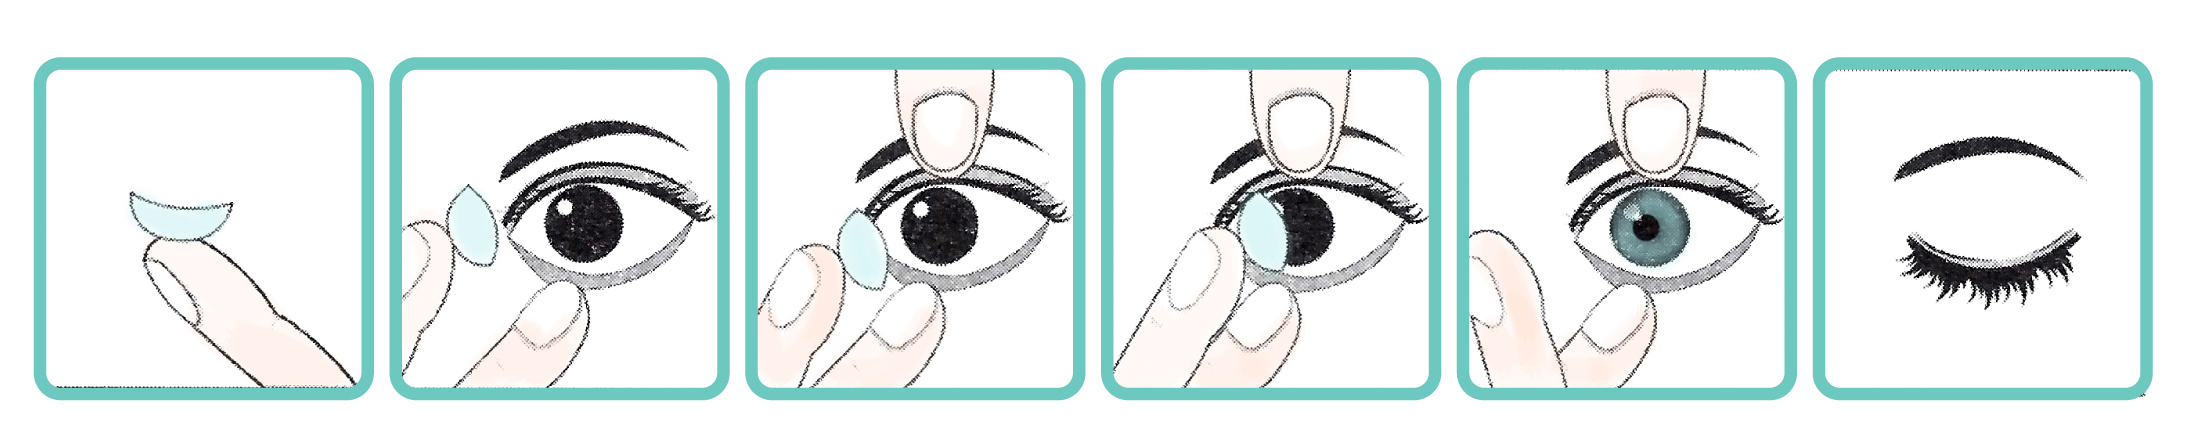 howtoinsertlenses.jpg